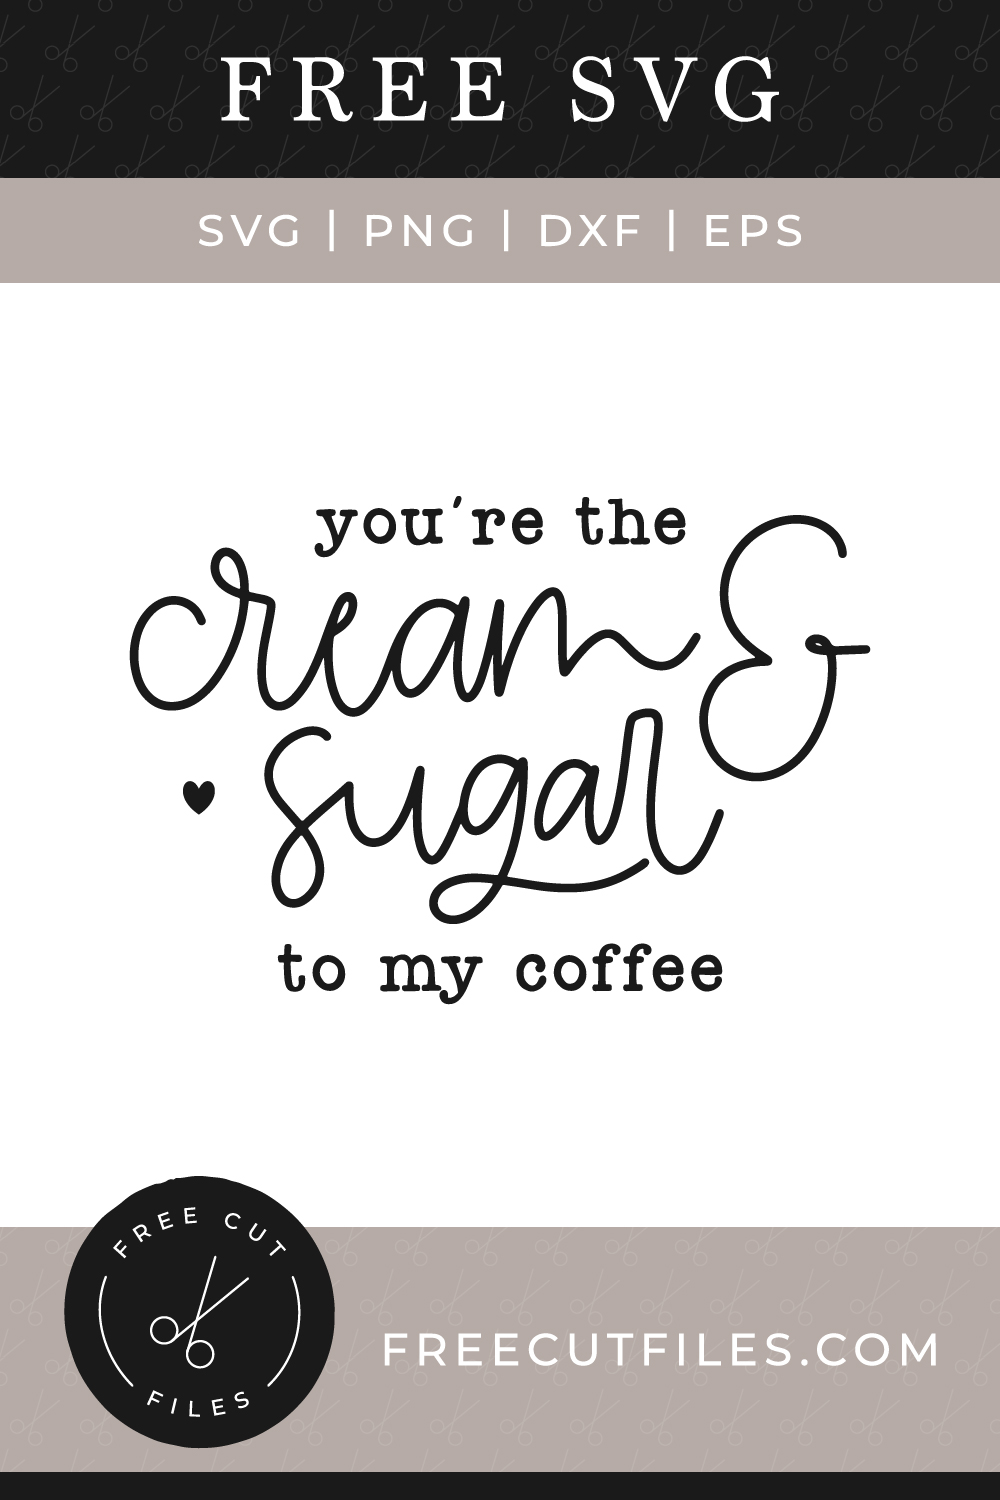 Free You're the cream & sugar to my coffee SVG